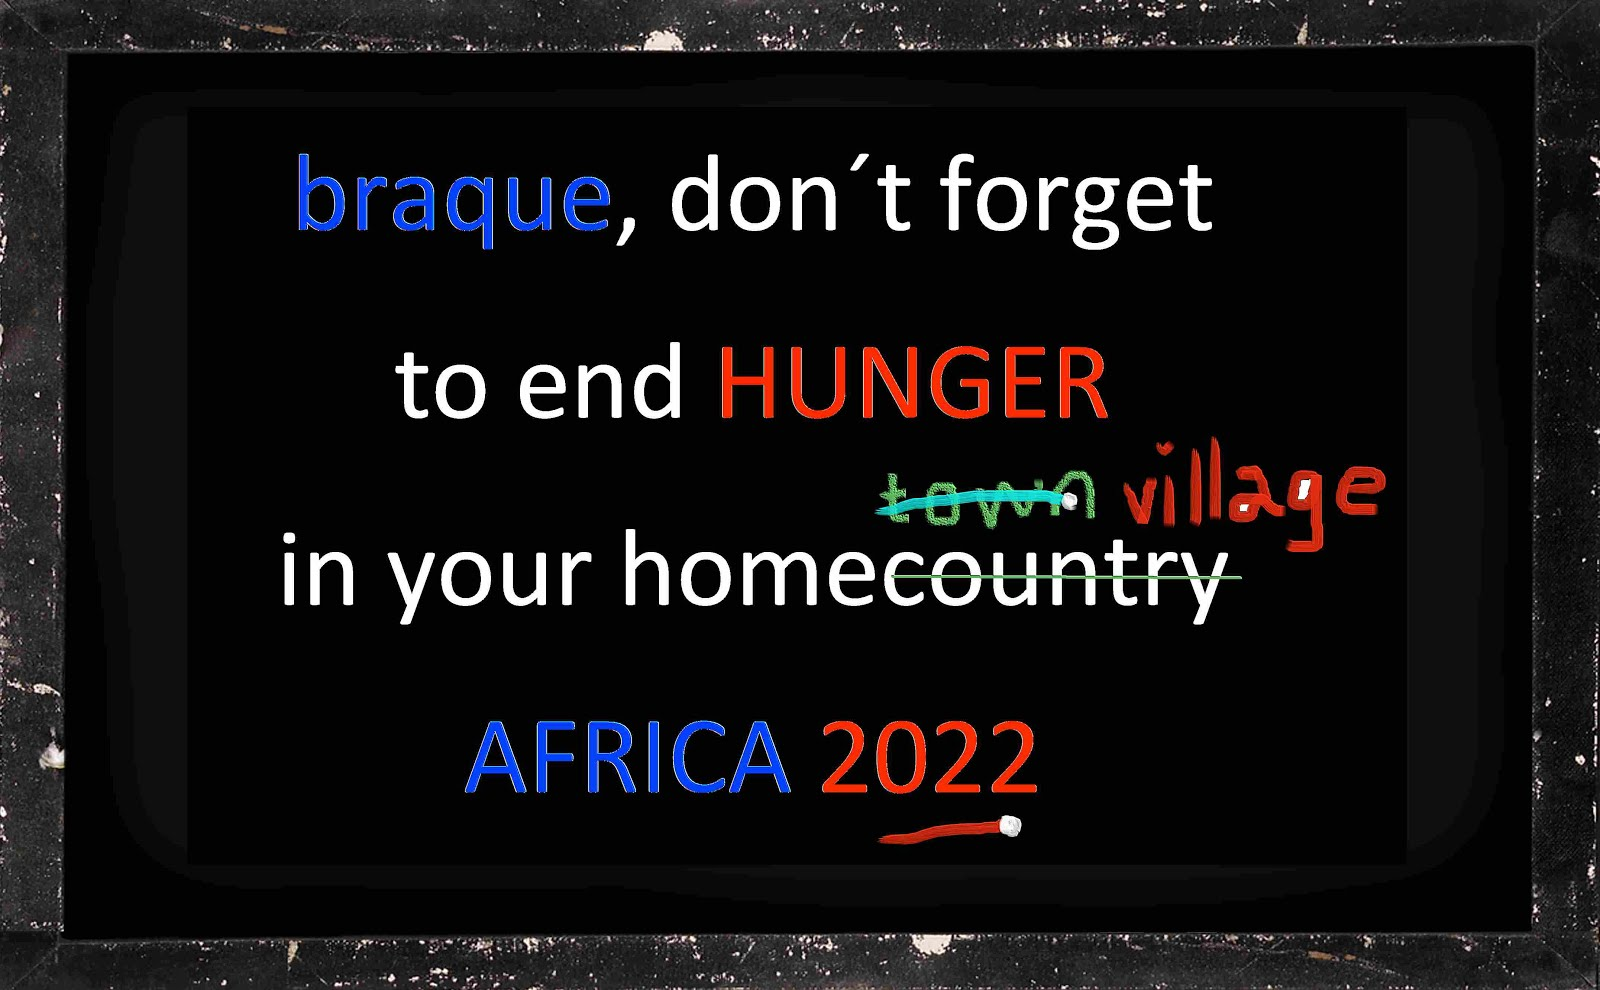 barack obama THE MENTAL REVOLUTION mischa vetere HUNGER committment AFRICA UN